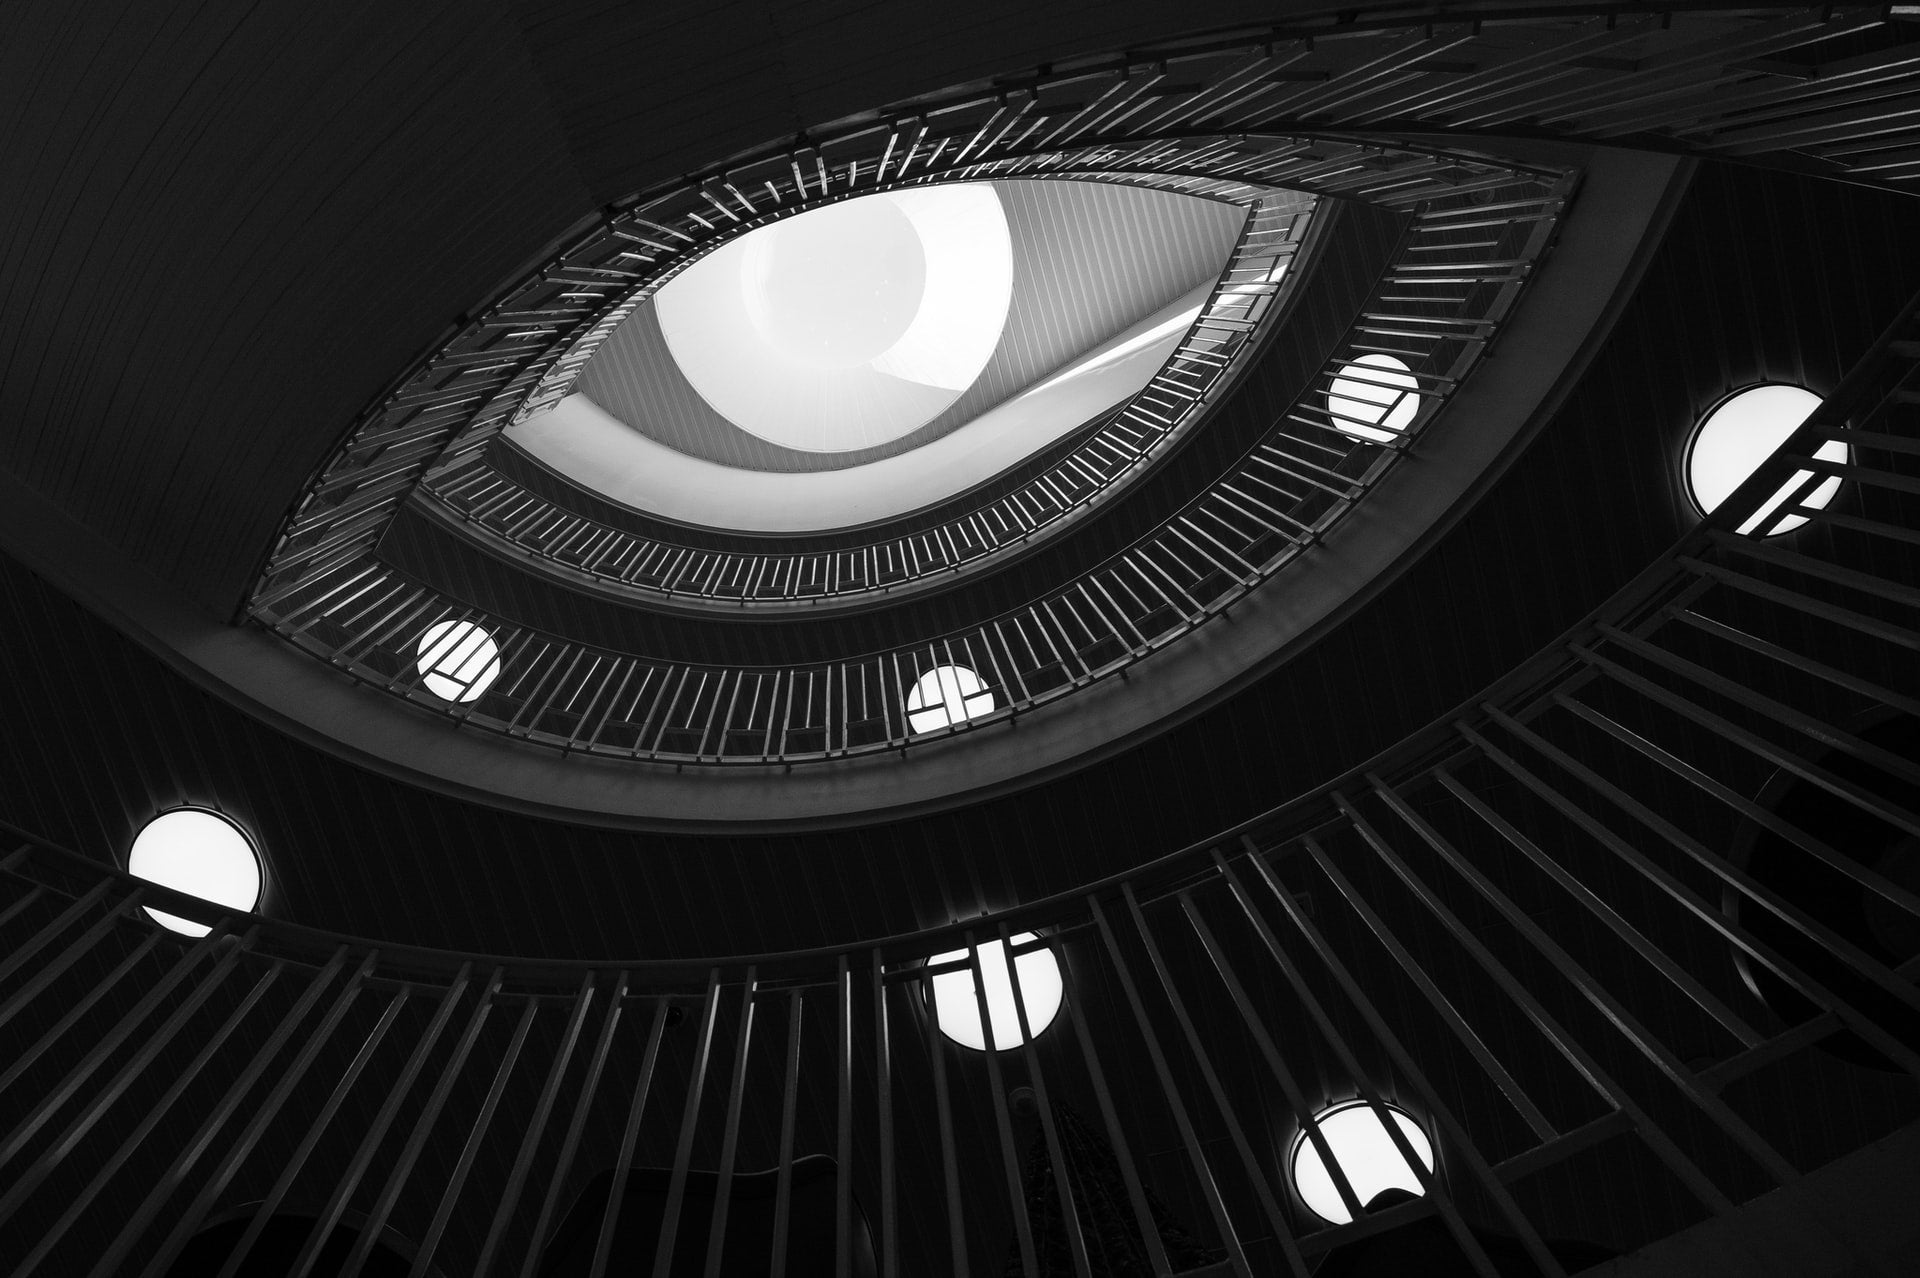 The camera is pointing up from the foot of a spiral staircase. The way the staircase curves make the vision resemble a human eye